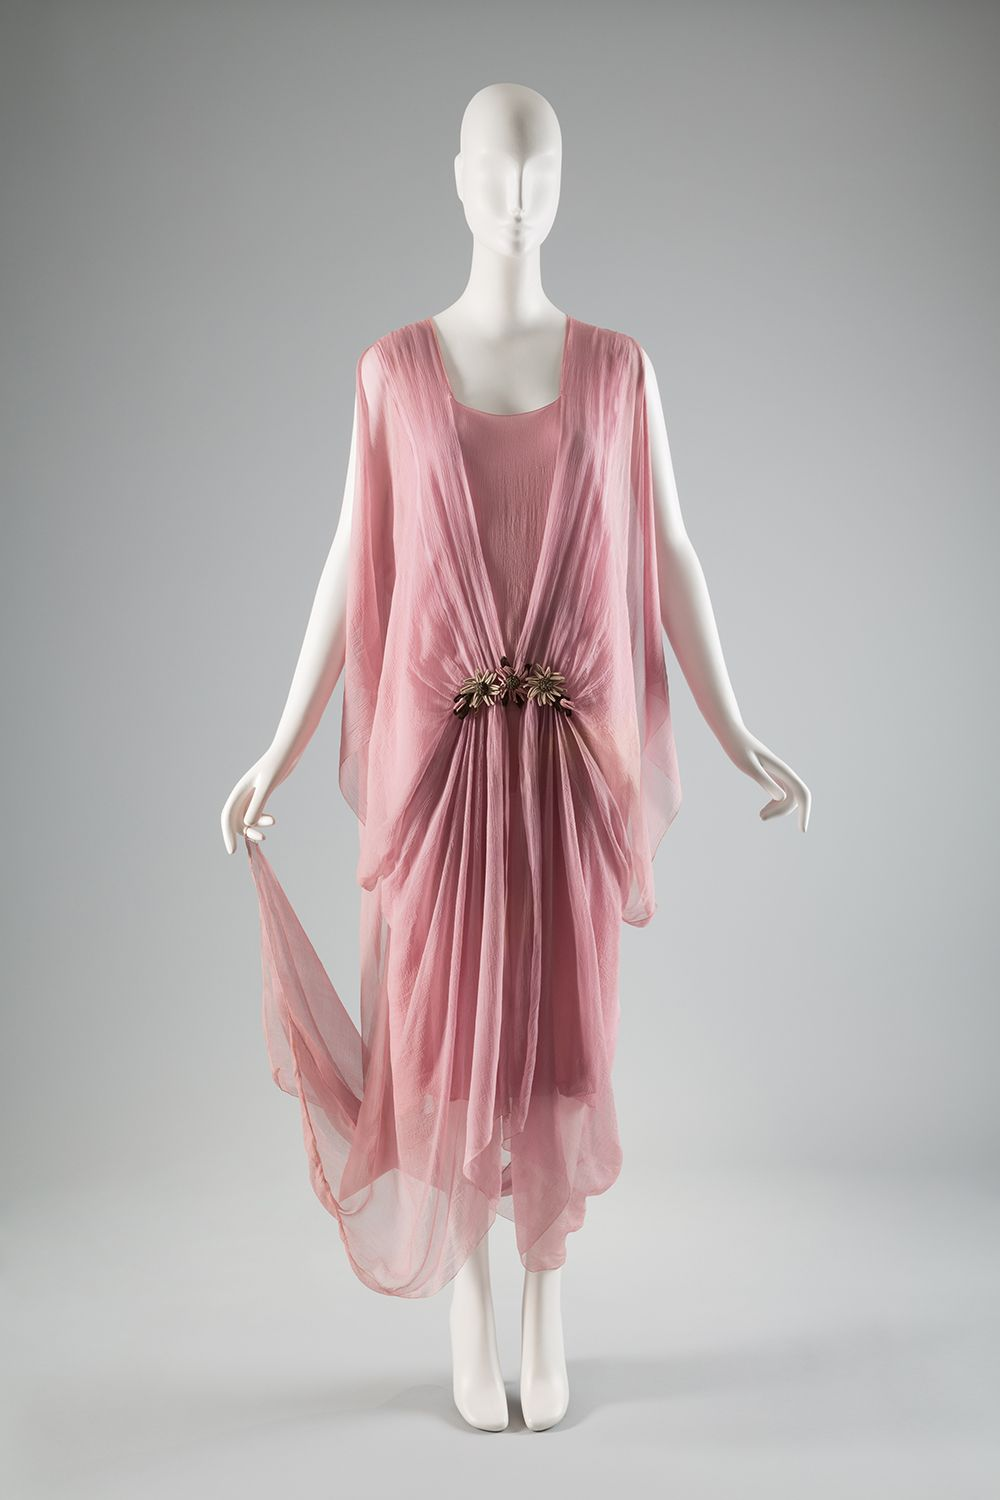 Bonwit Teller And Co Dress C 1920 Collection Of The Museum At Fit Dancefashion 1920s Fashion 1920 Fashion 1920 Dress [ 1500 x 1000 Pixel ]